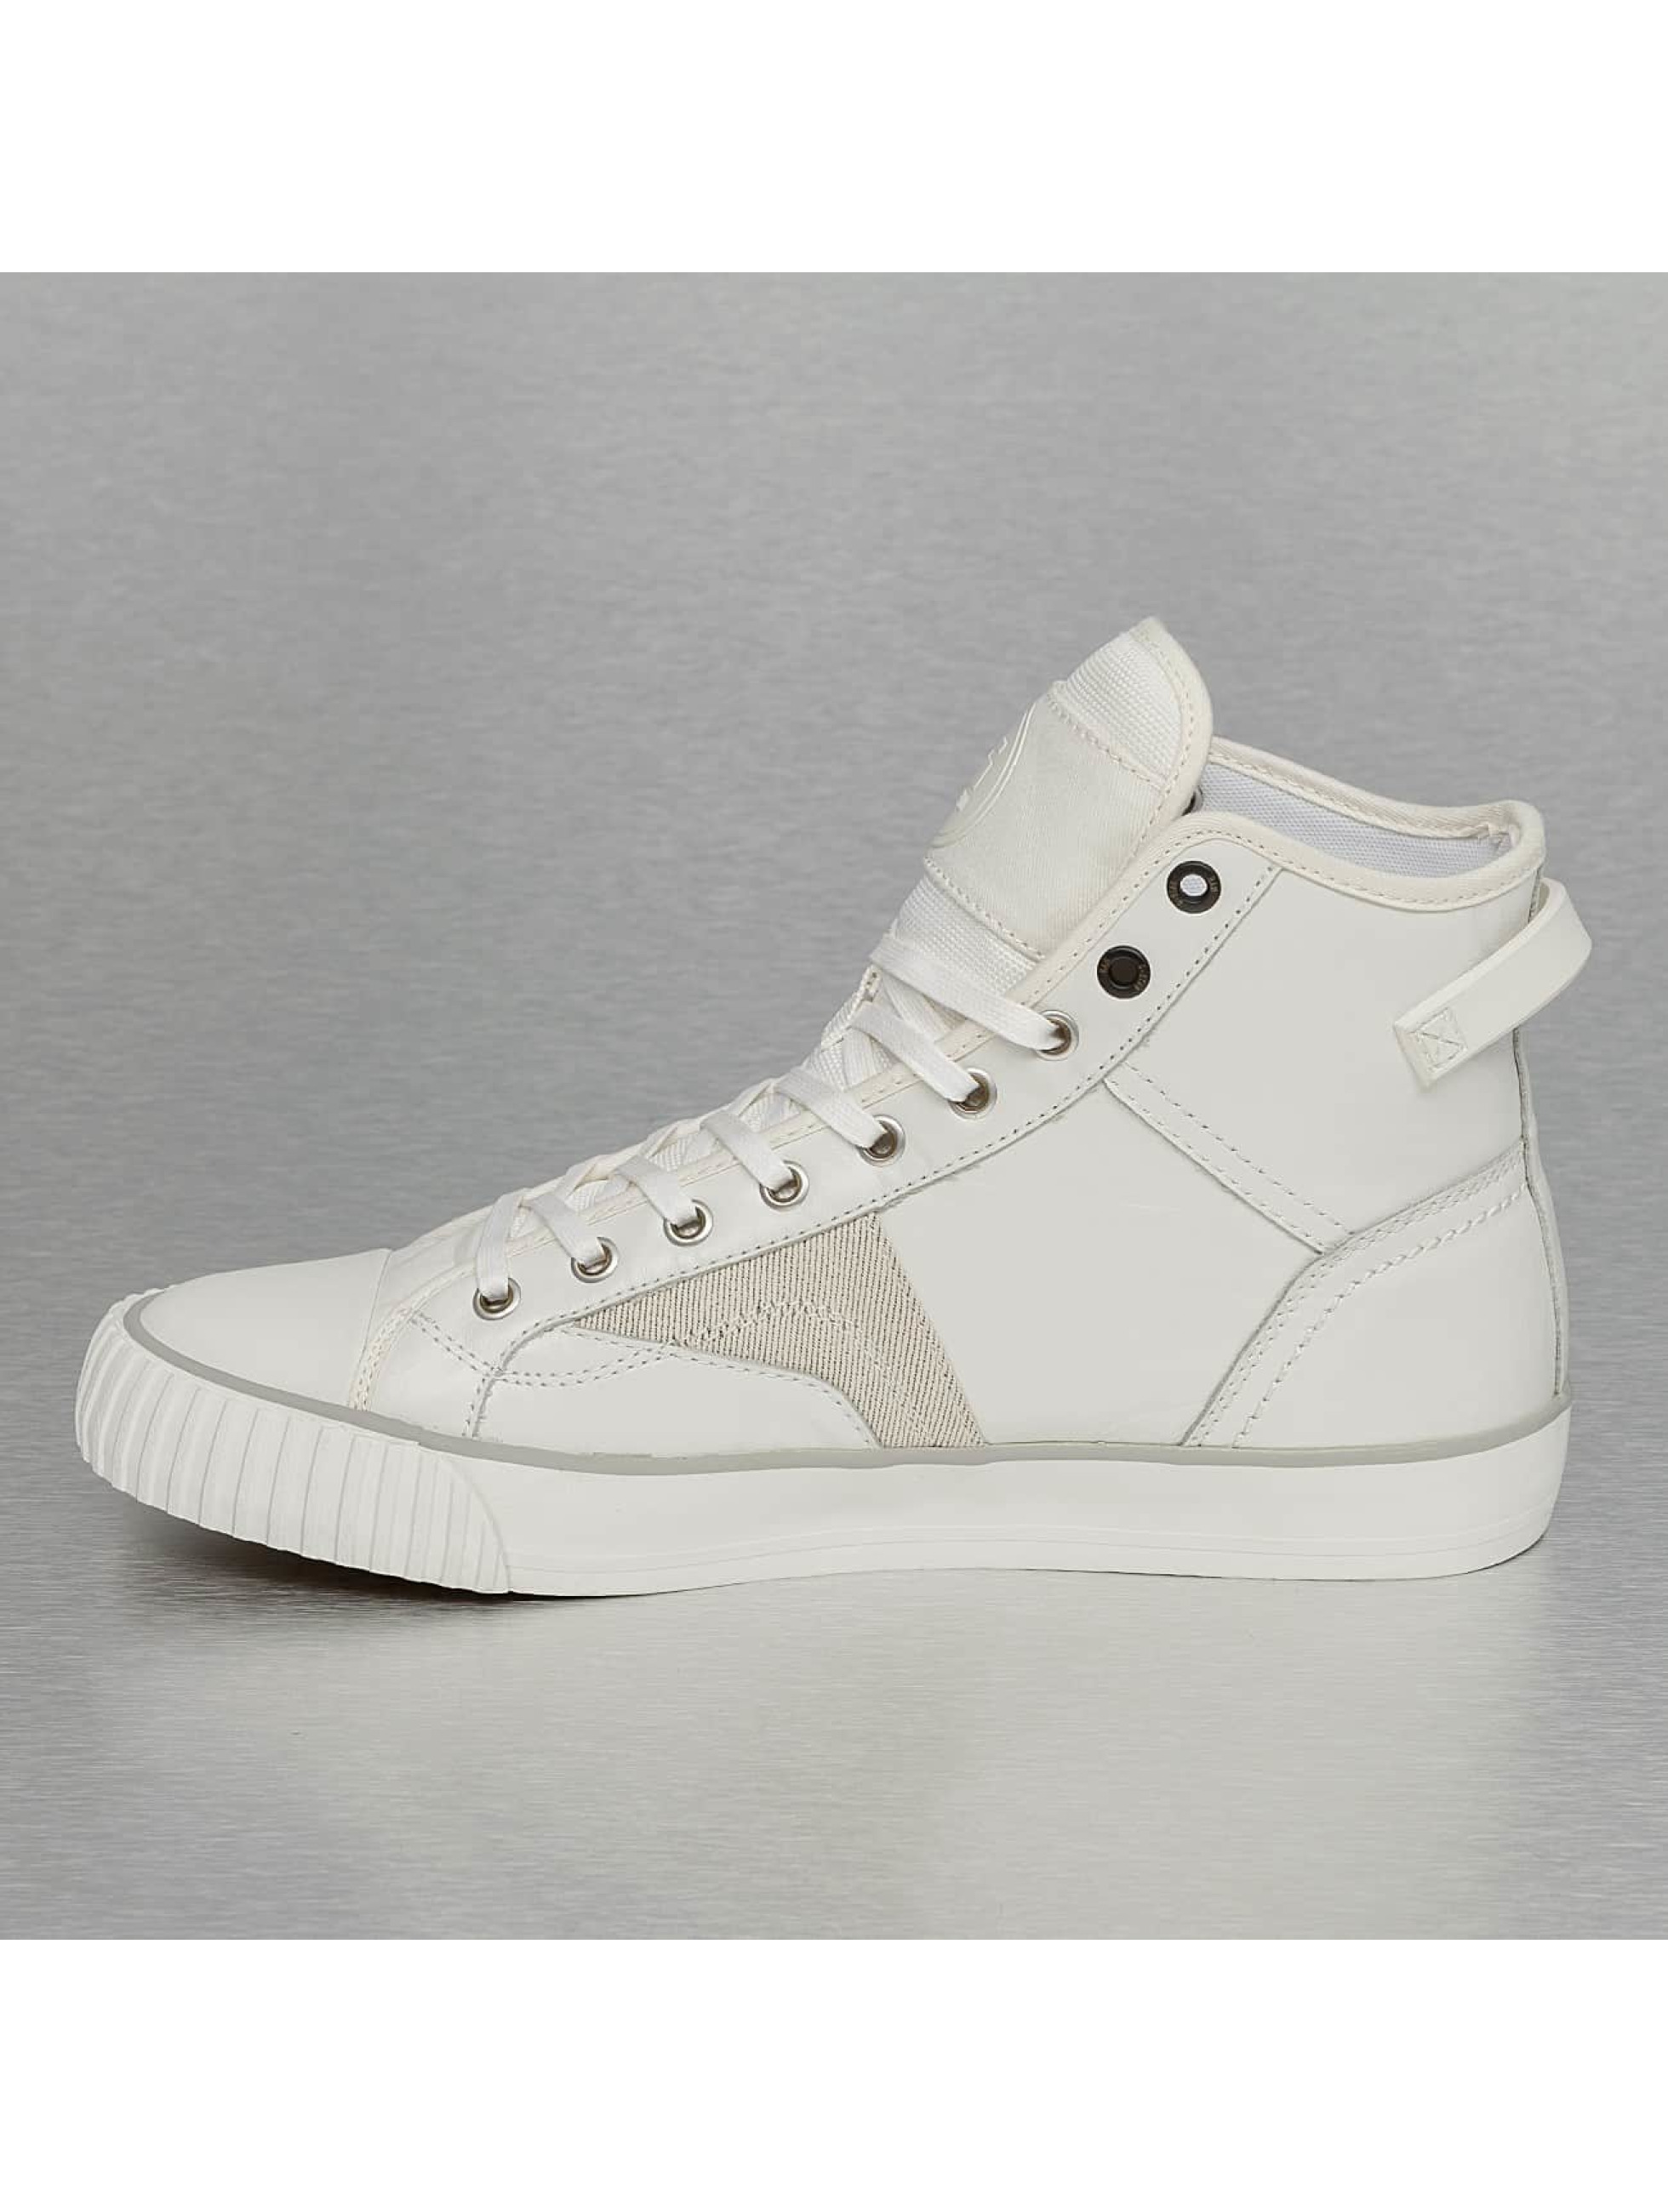 G-Star Footwear Sneaker Campus Scott Raw weiß